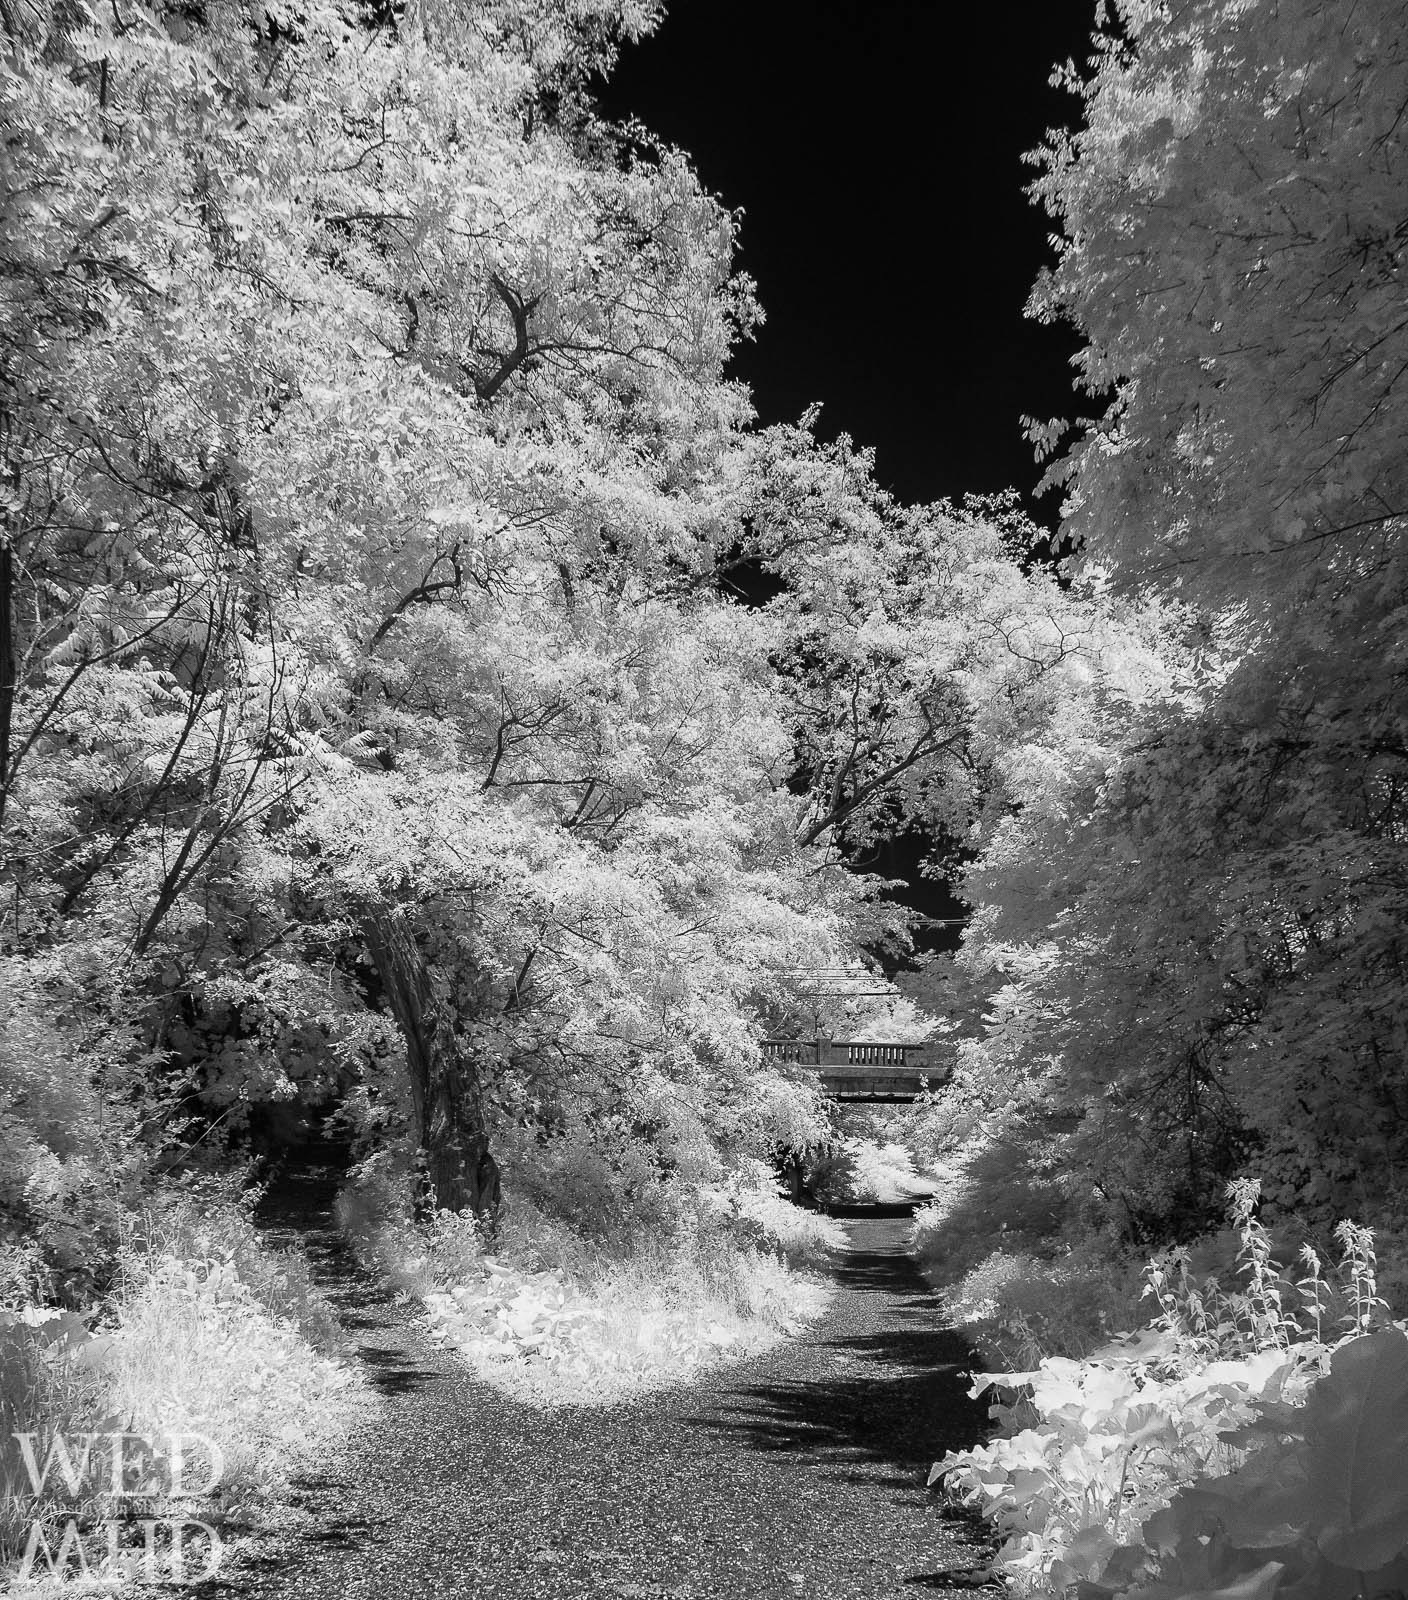 An infrared black and white image of the Village Street bridge over the Marblehead rail trail captured on a late spring afternoon